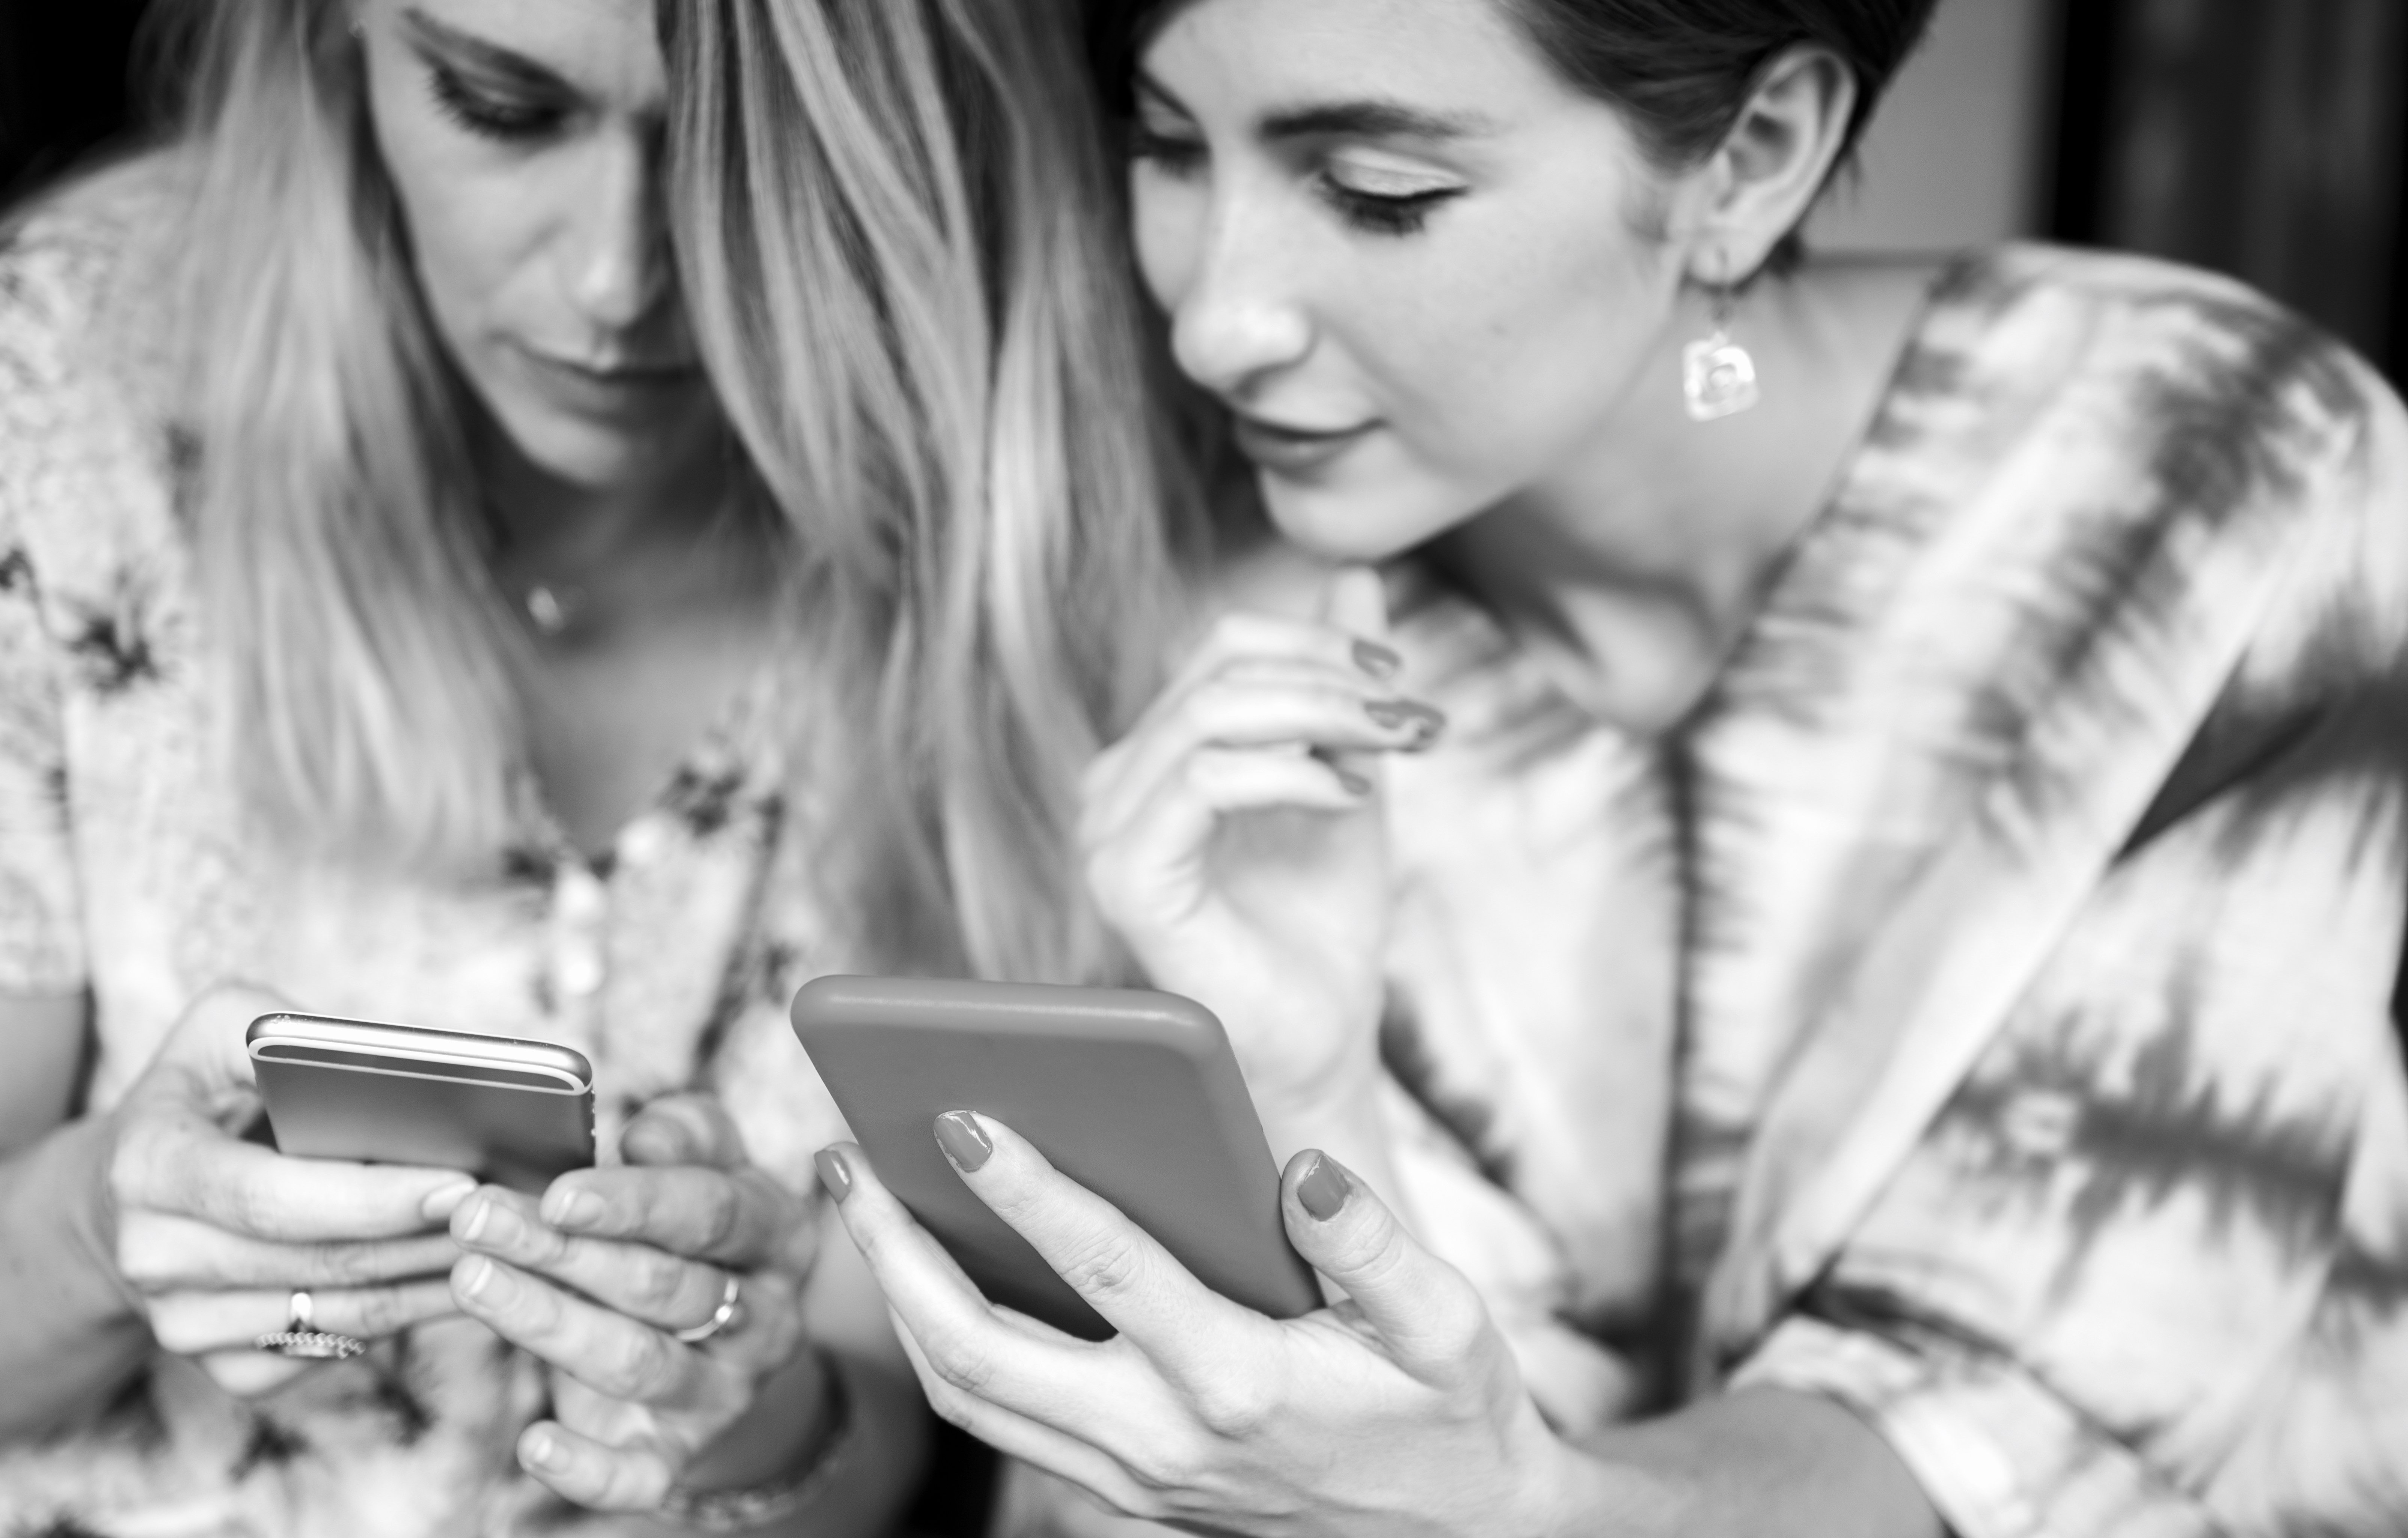 Two women looking at phones